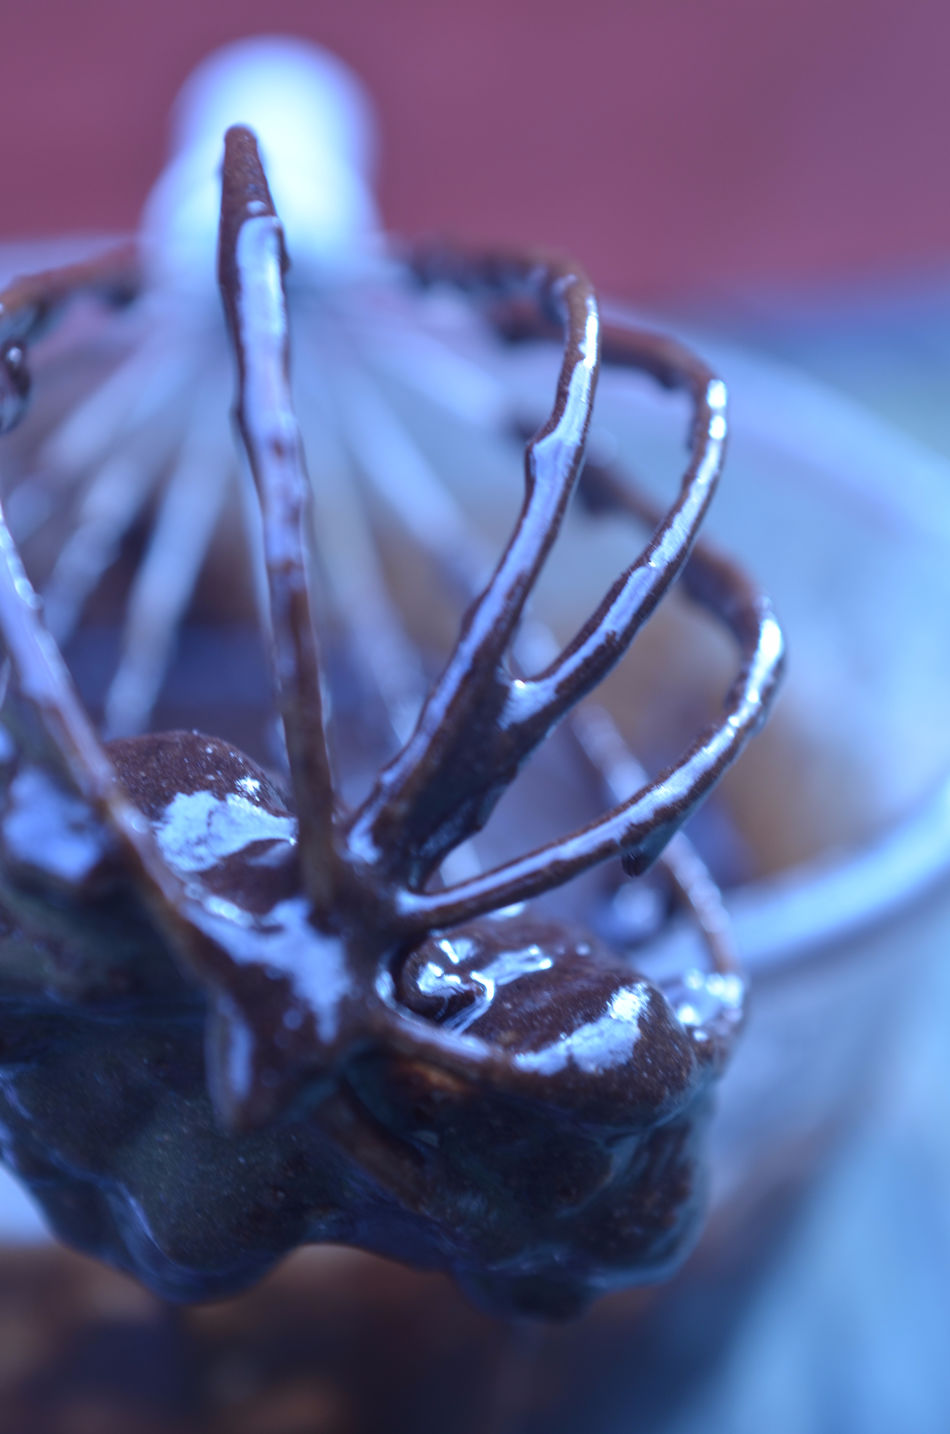 wire whisk dripping with chocolate brownie mix Baking Brownie Mix  Chocolate Close Up Close-up Cooking Cooking At Home Day Kitchen Utensils Mix No People Preparation  Whisk